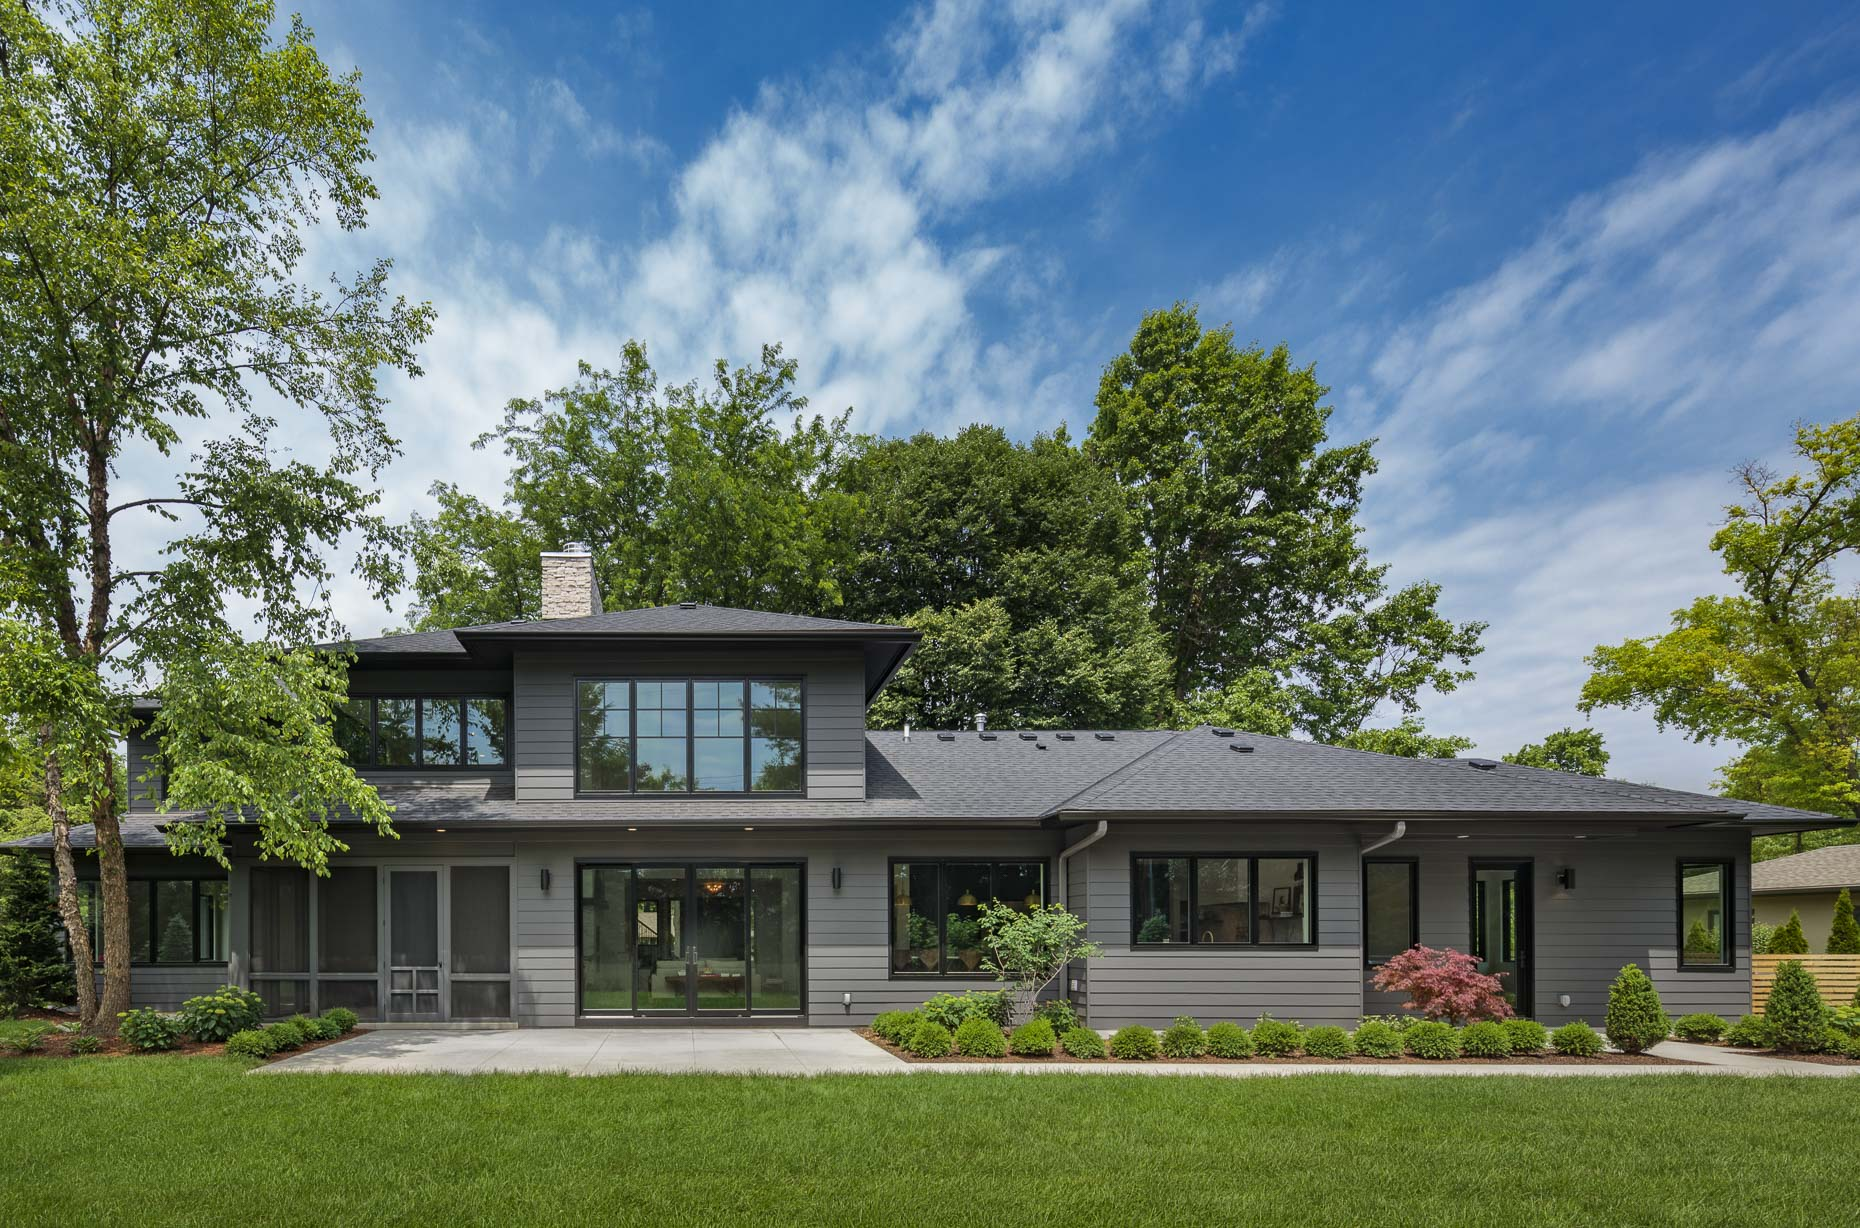 Dorchester Private Residence by Paul & Jo Studio photographed by Lauren K Davis based in Columbus, Ohio